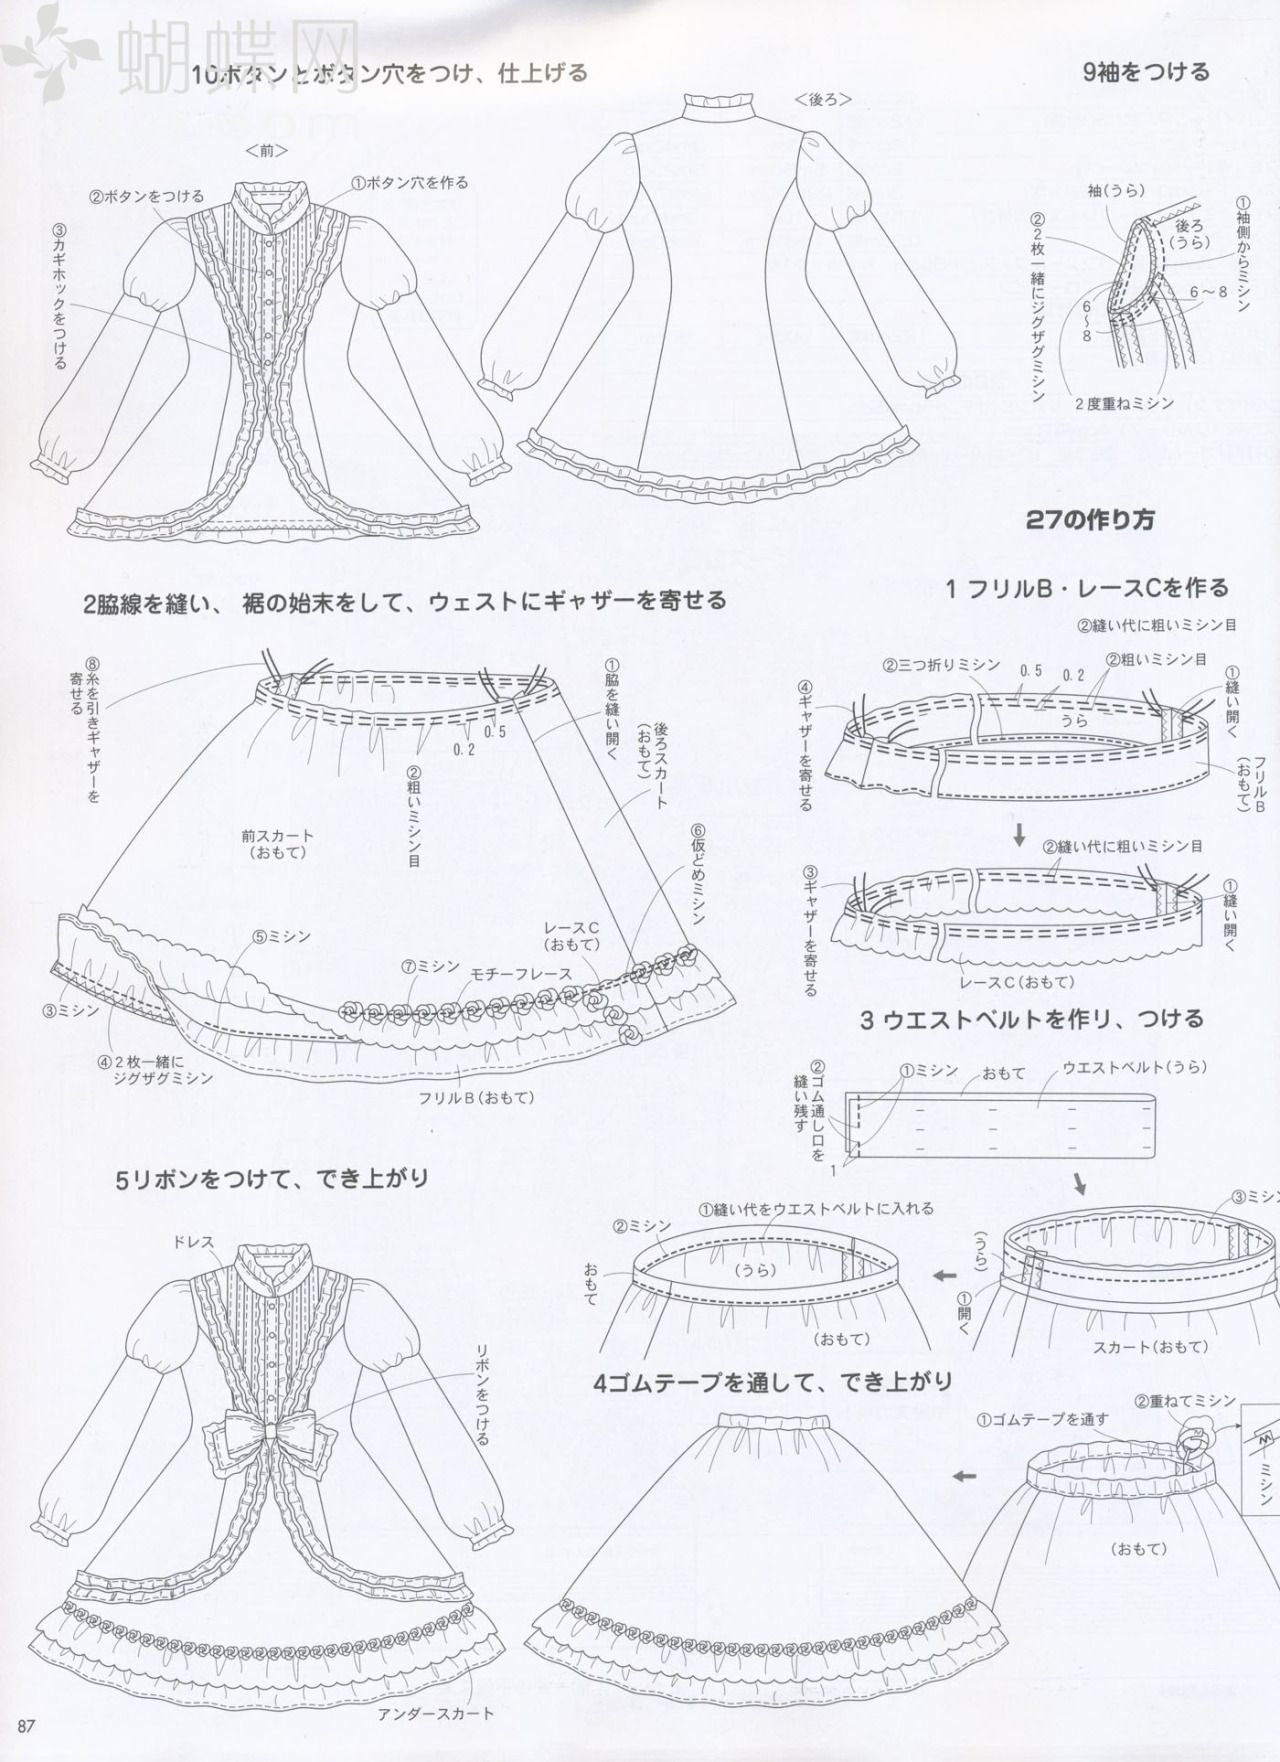 D.I.Y Lolita dress page 4 | Things I Want To Sew | Pinterest ...